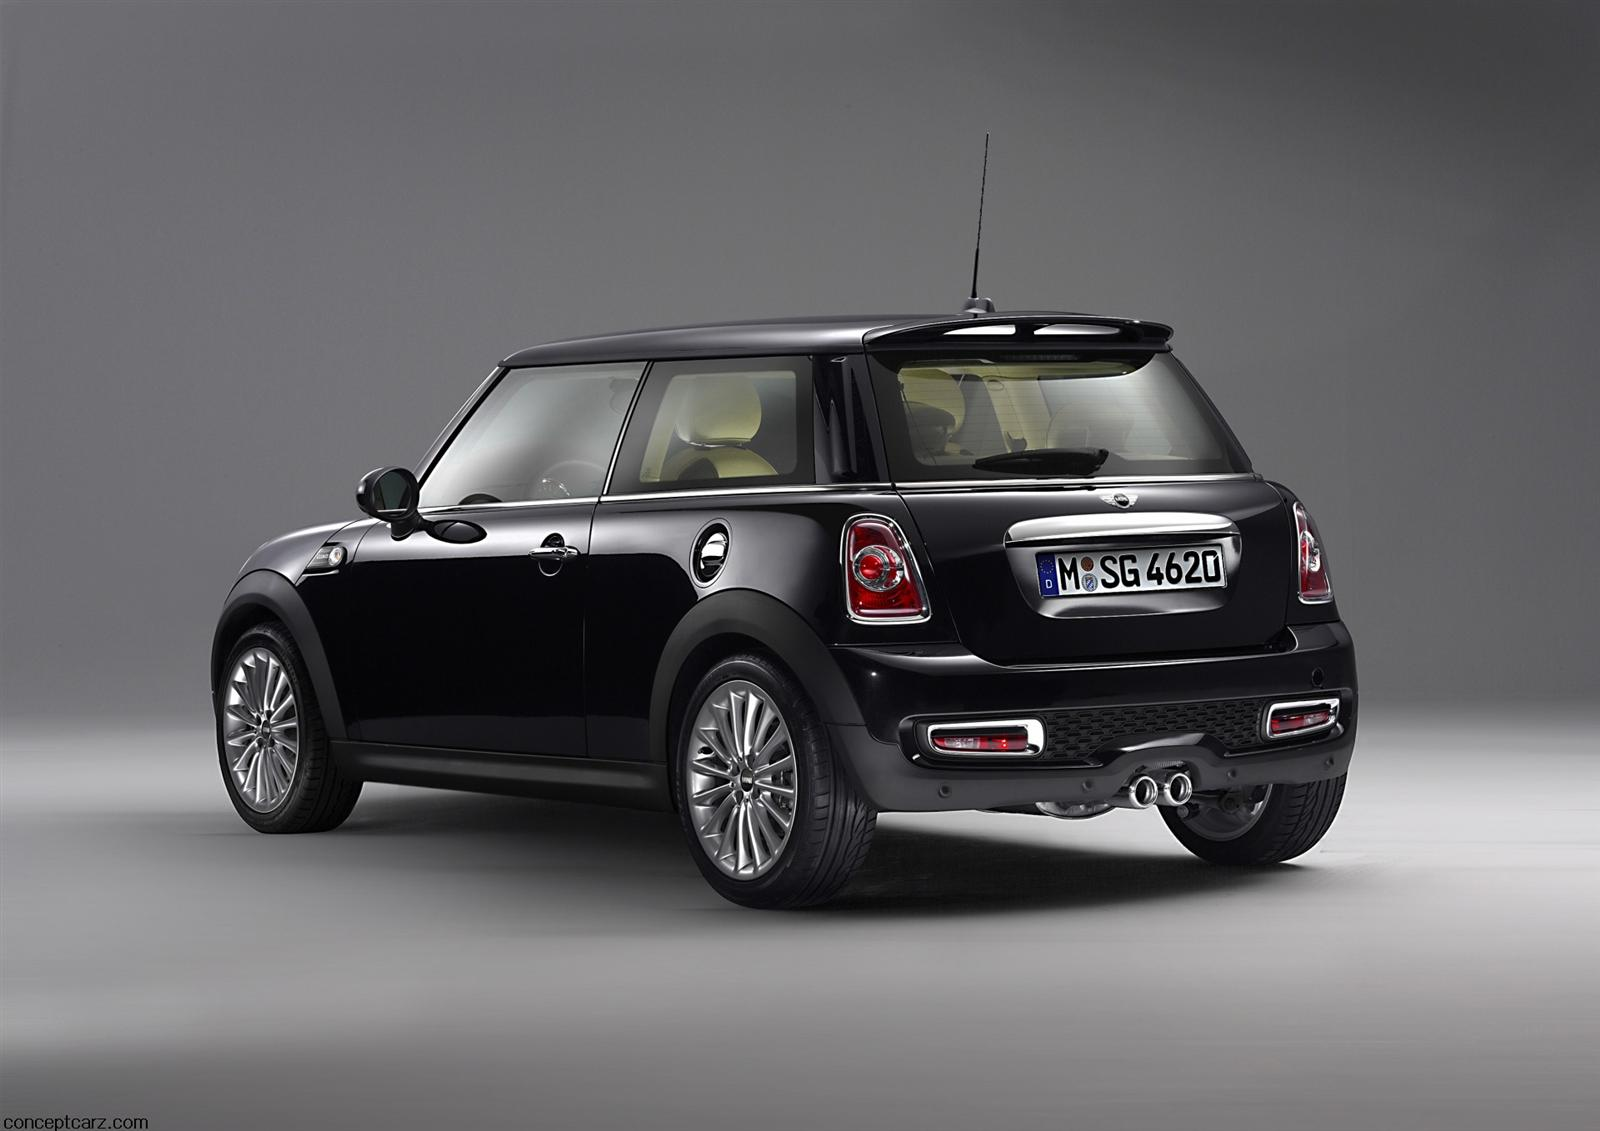 2011 MINI Inspired By Goodwood